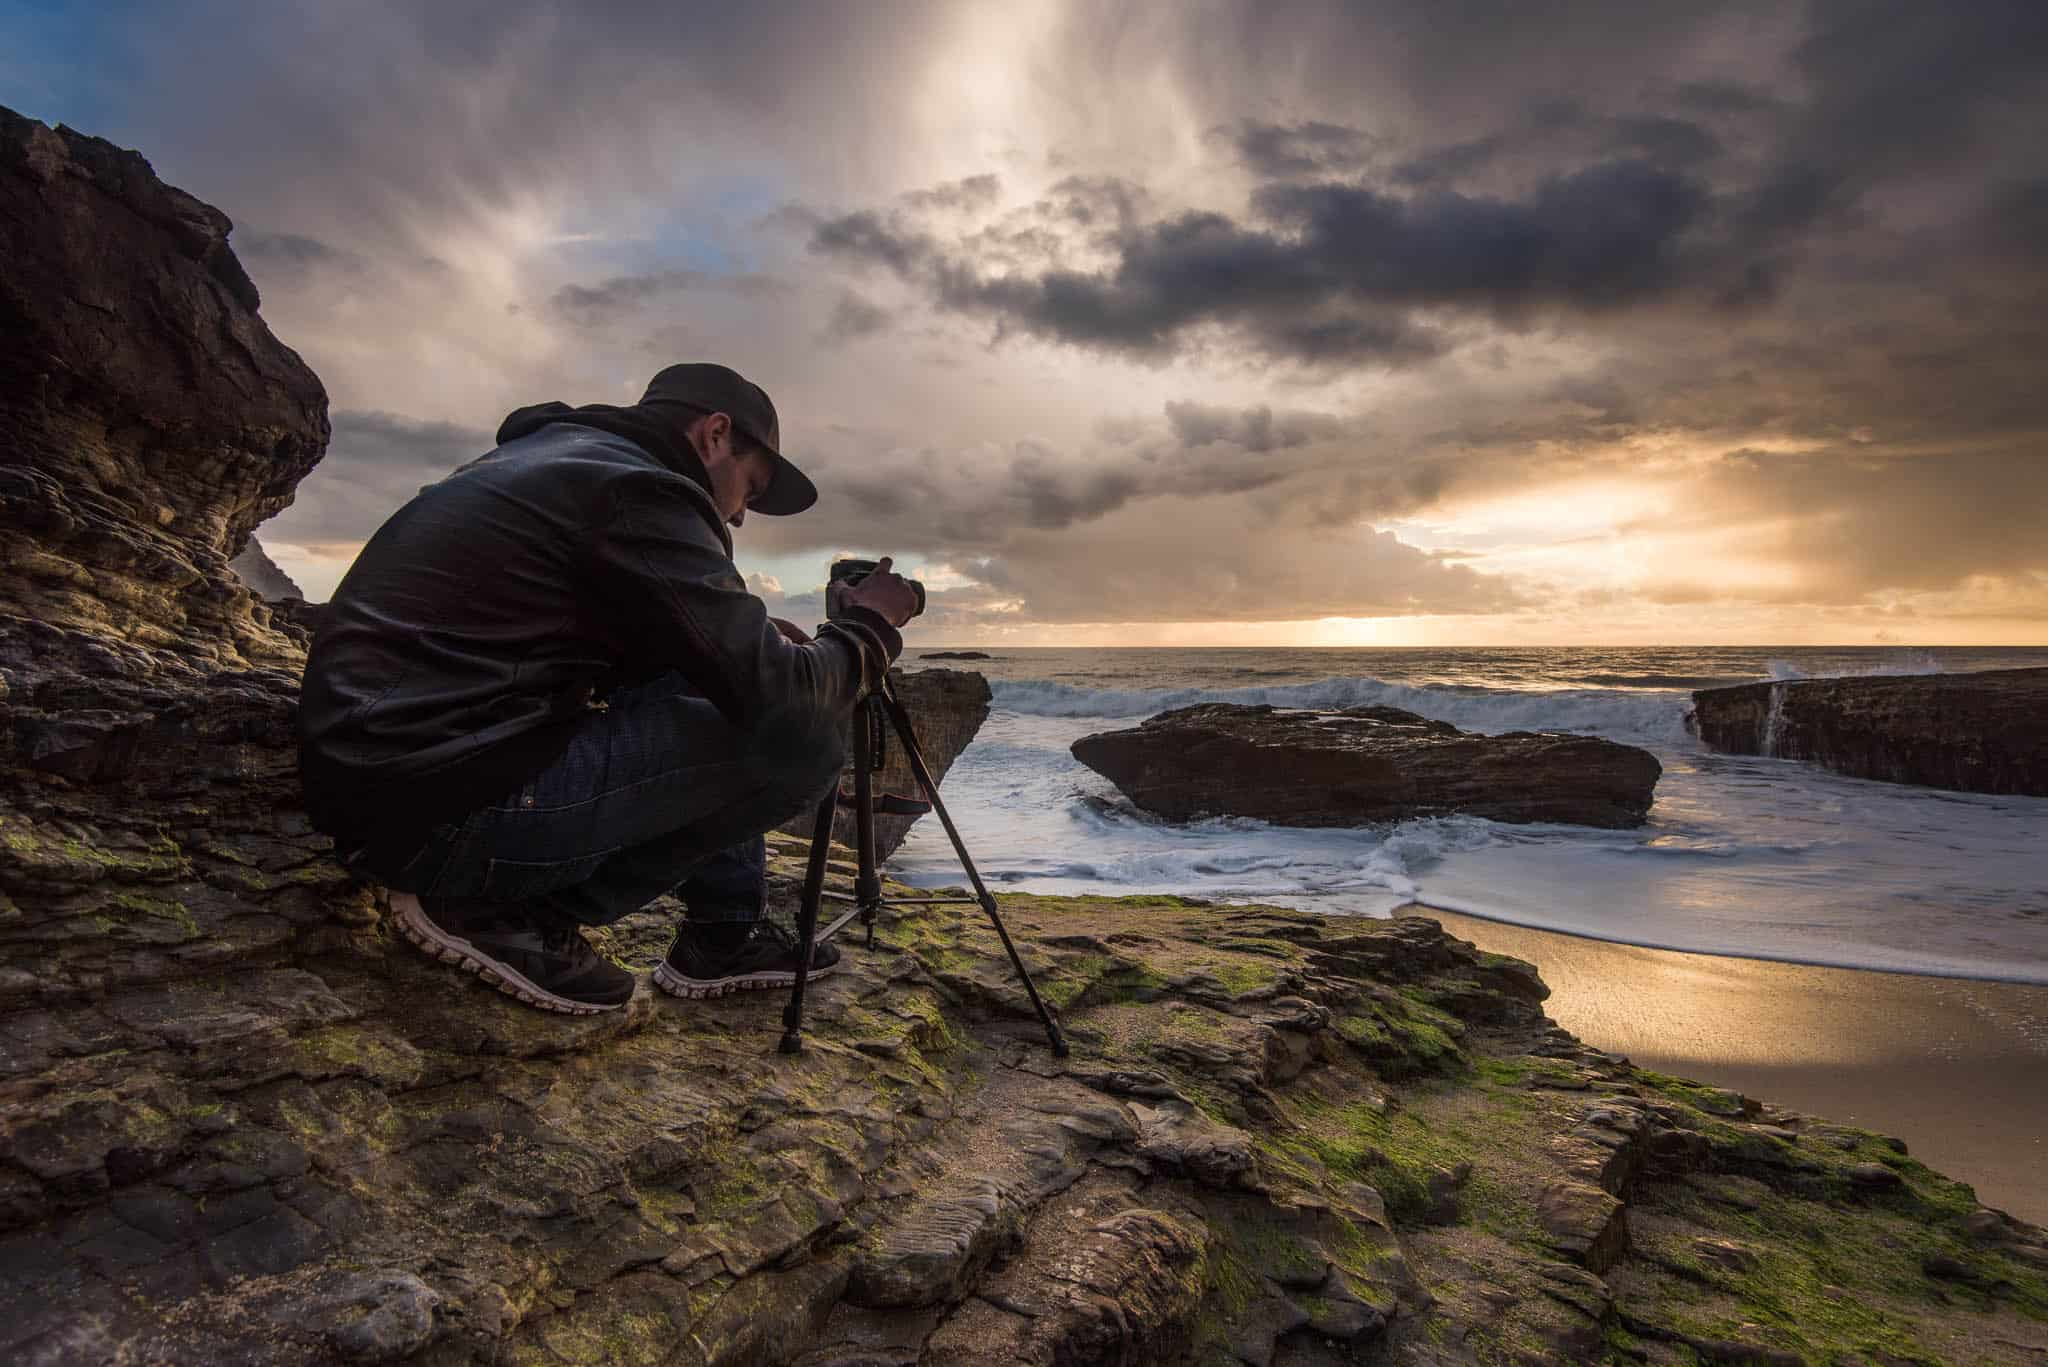 photographer crouched on coastal rocks along California coast